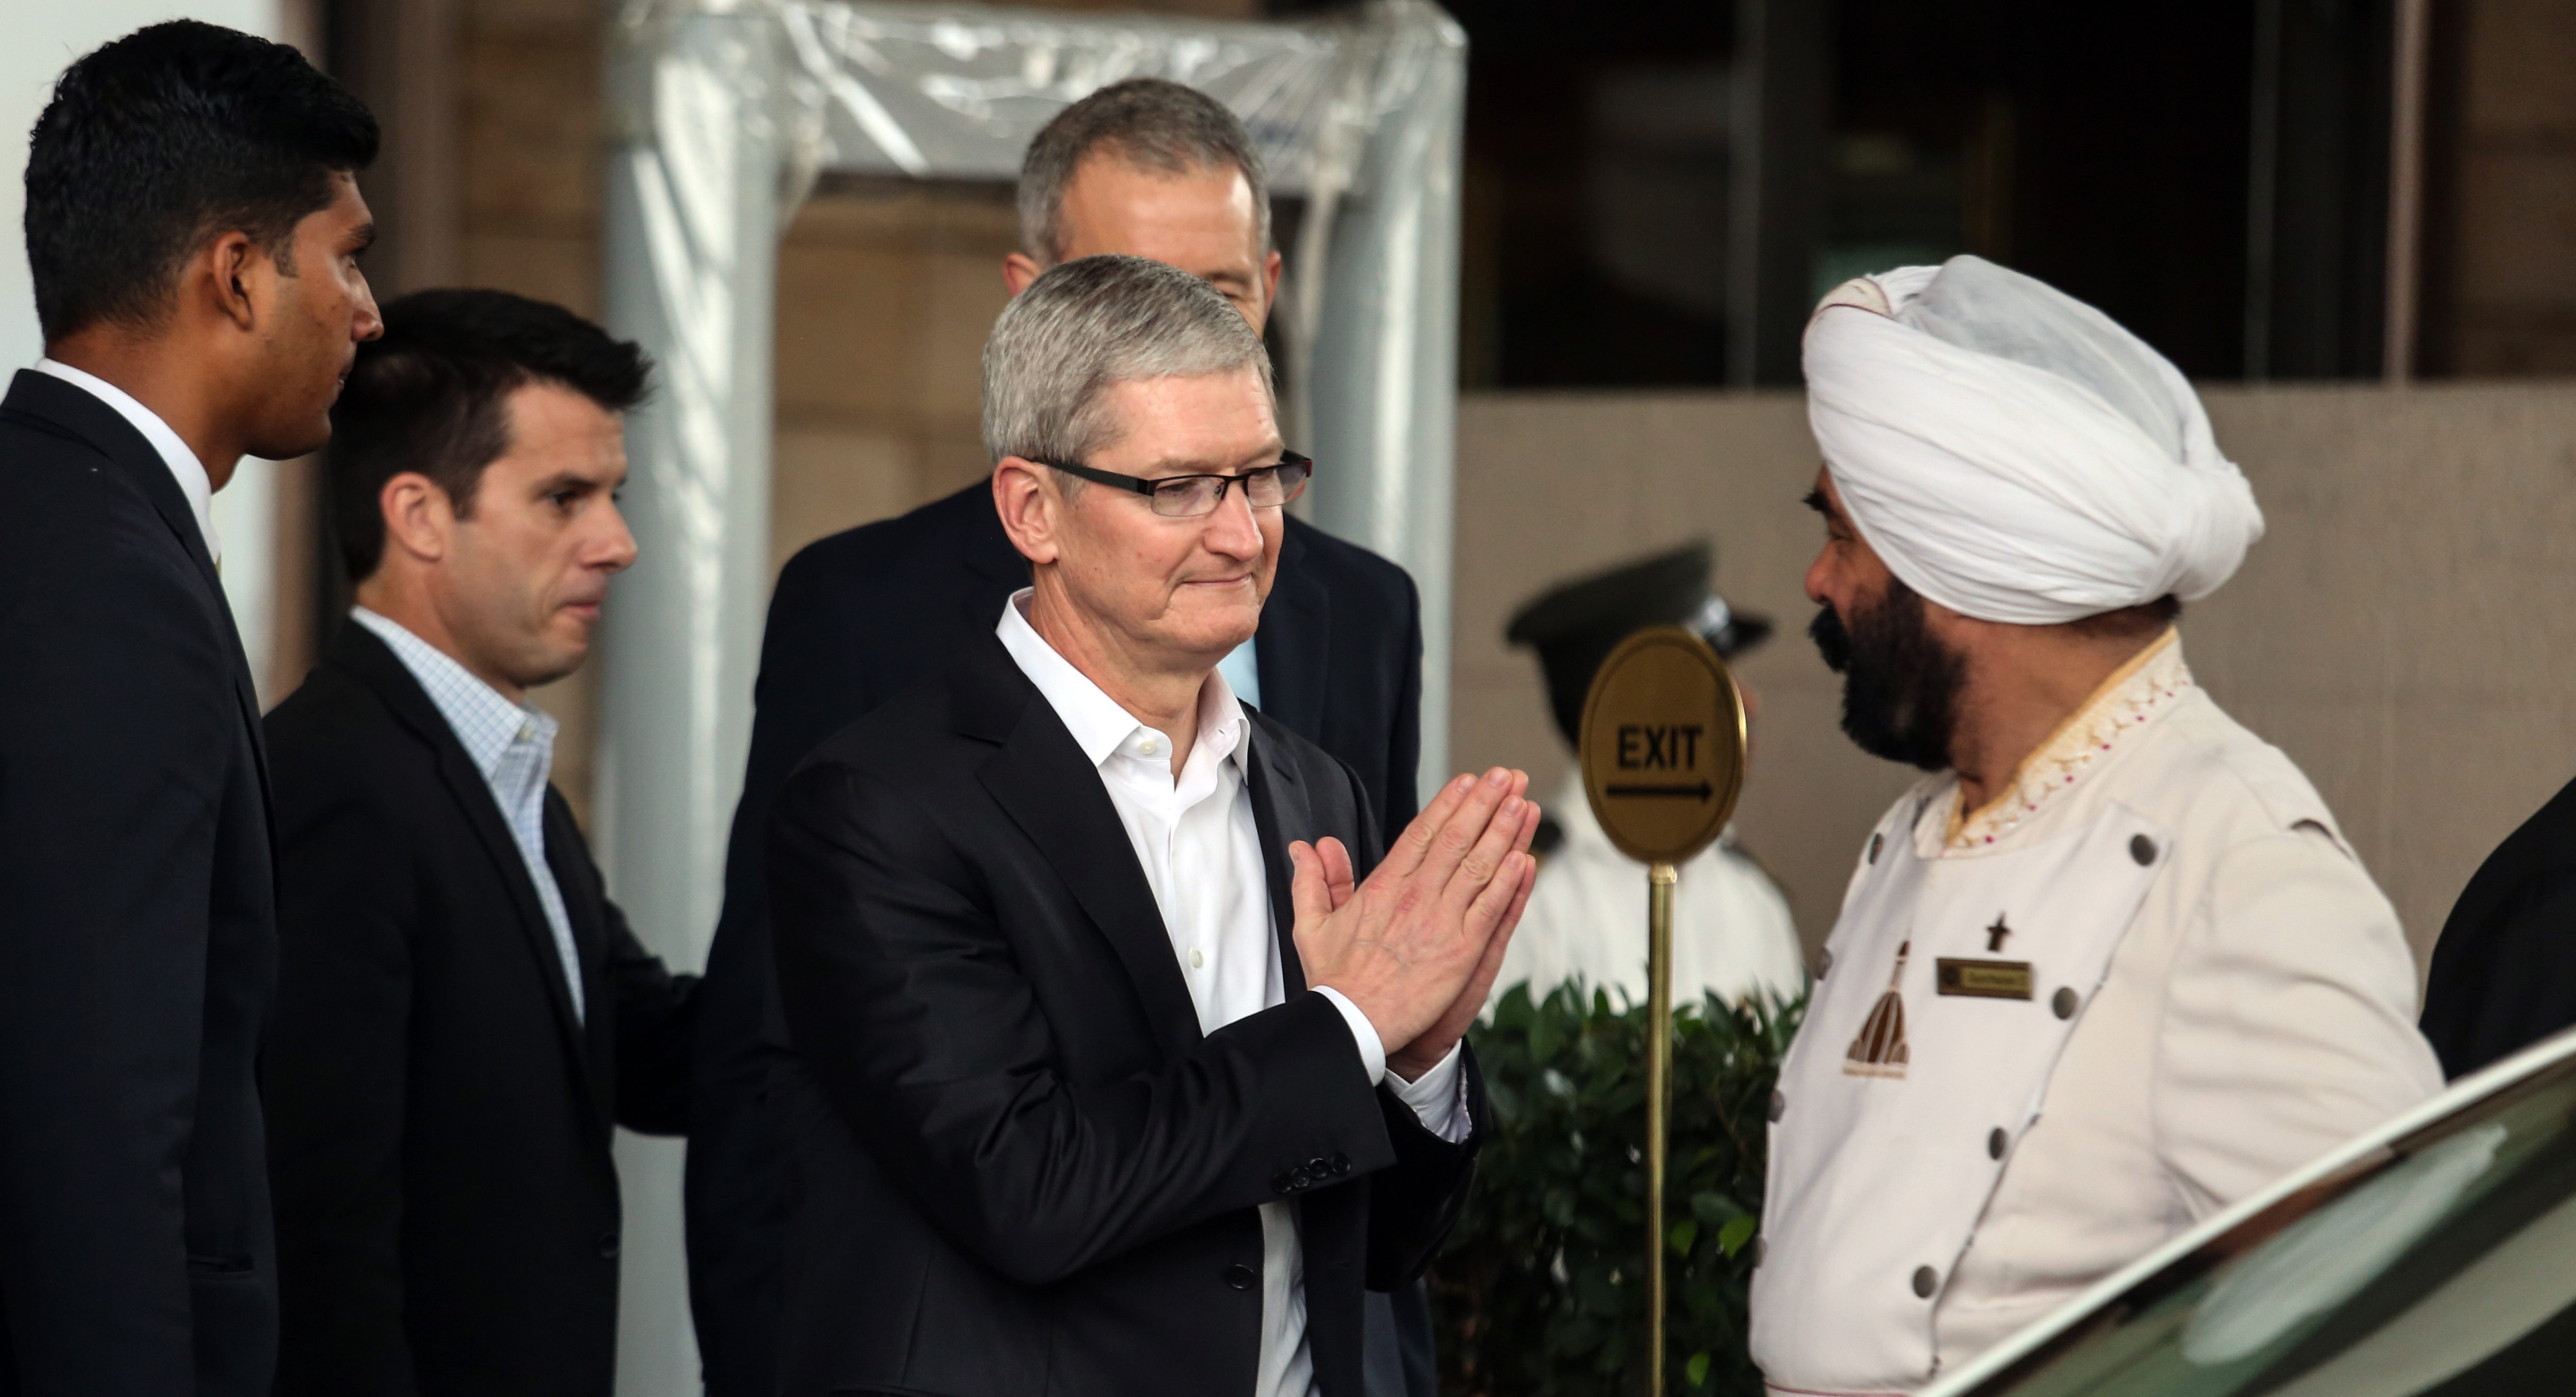 Apple Chief Executive Officer Tim Cook (C) leaves the city hotel in Mumbai, on the first day of his visit to India, 18 May 2016. According to reports Tim Cook is on a four day visit to India during which he will meet with Prime Minister Narendra Modi, Tata Group Chairman Cyrus Mistry and Indian film actor, Shah Rukh Khan.